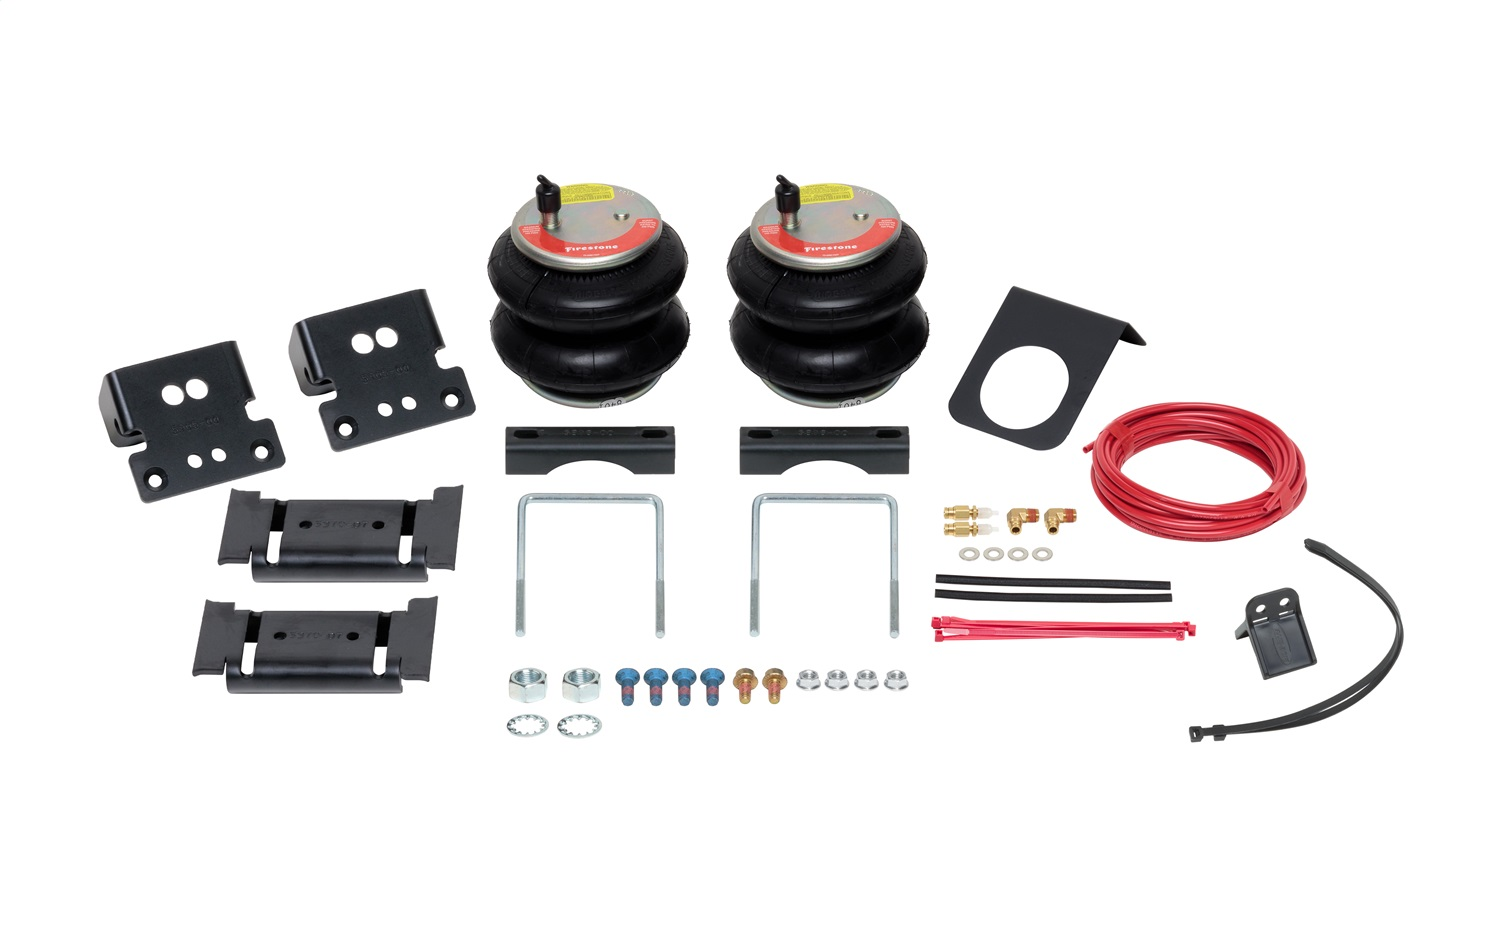 Firestone Ride-Rite 2710 RED Label Ride Rite Extreme Duty Air Spring Kit